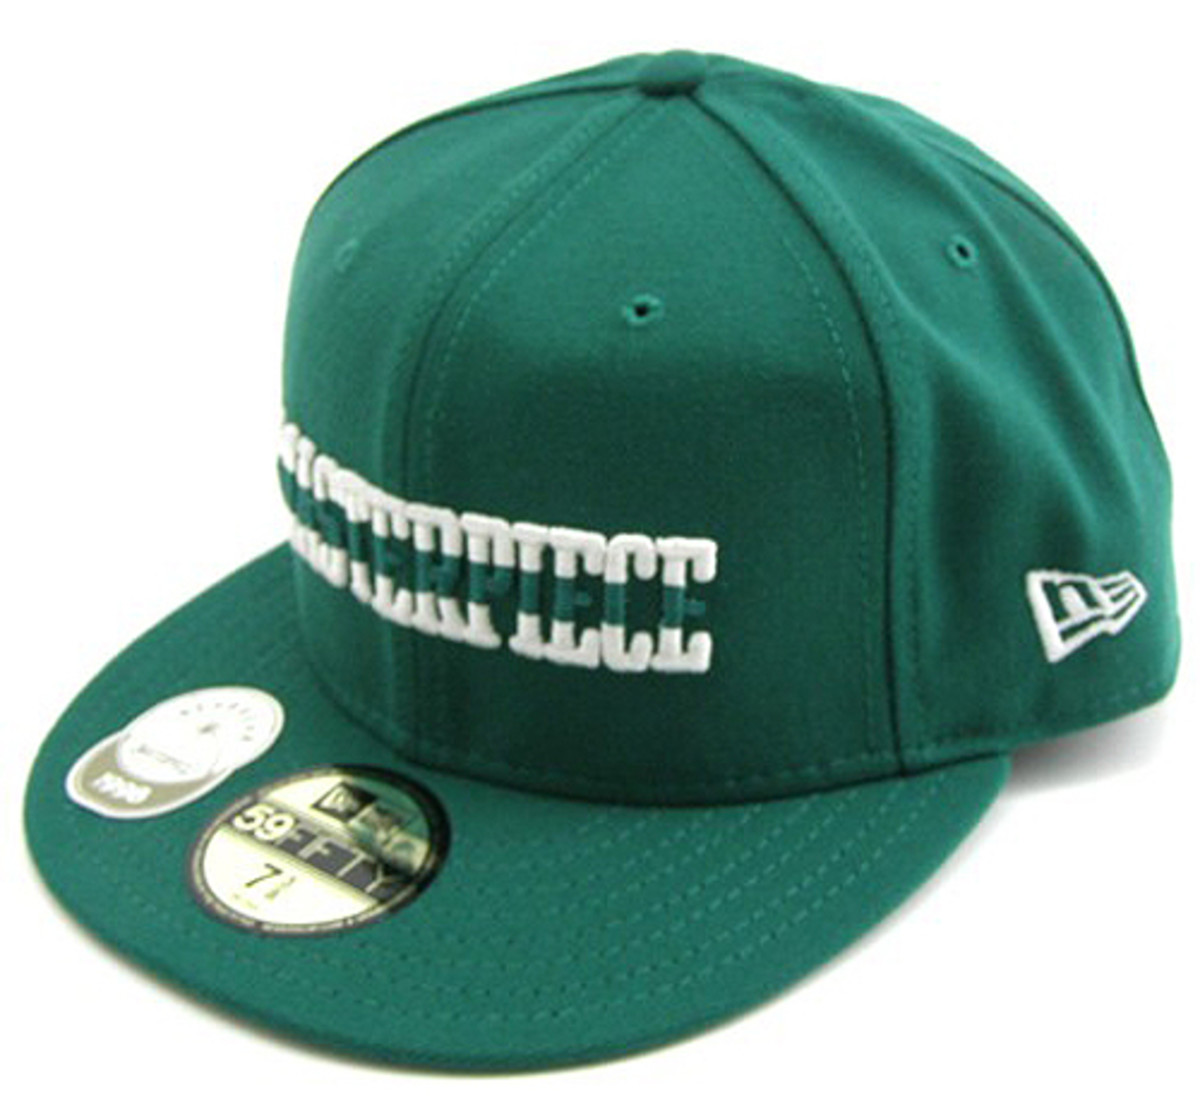 MASTERPIECE x New Era - Logo 59FIFTY Fitted Cap